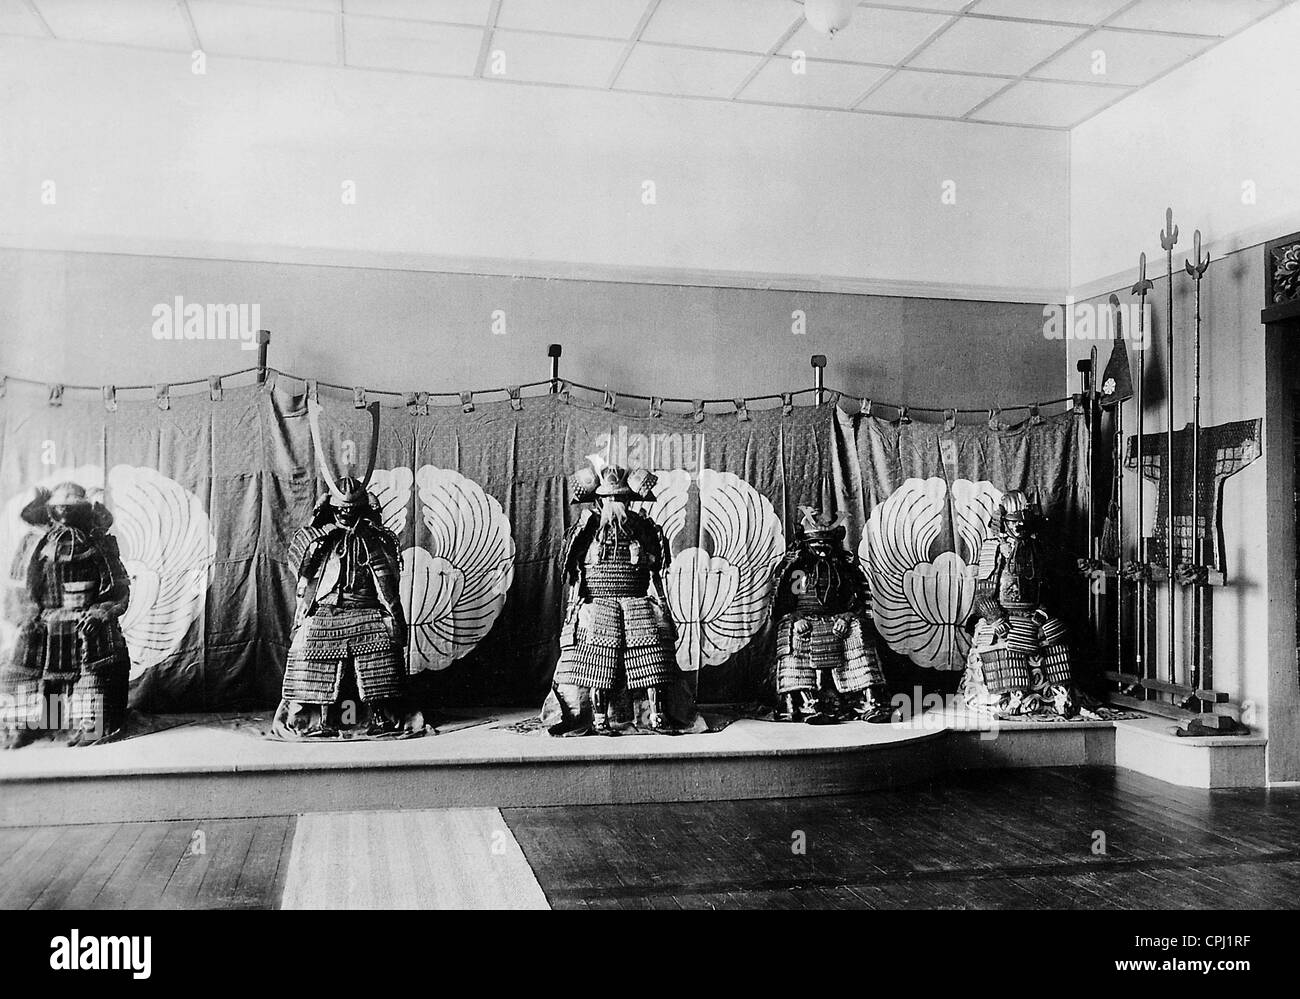 Samurai armor in an exhibition of the Berlin Museum of Arts and Crafts, 1937 - Stock Image